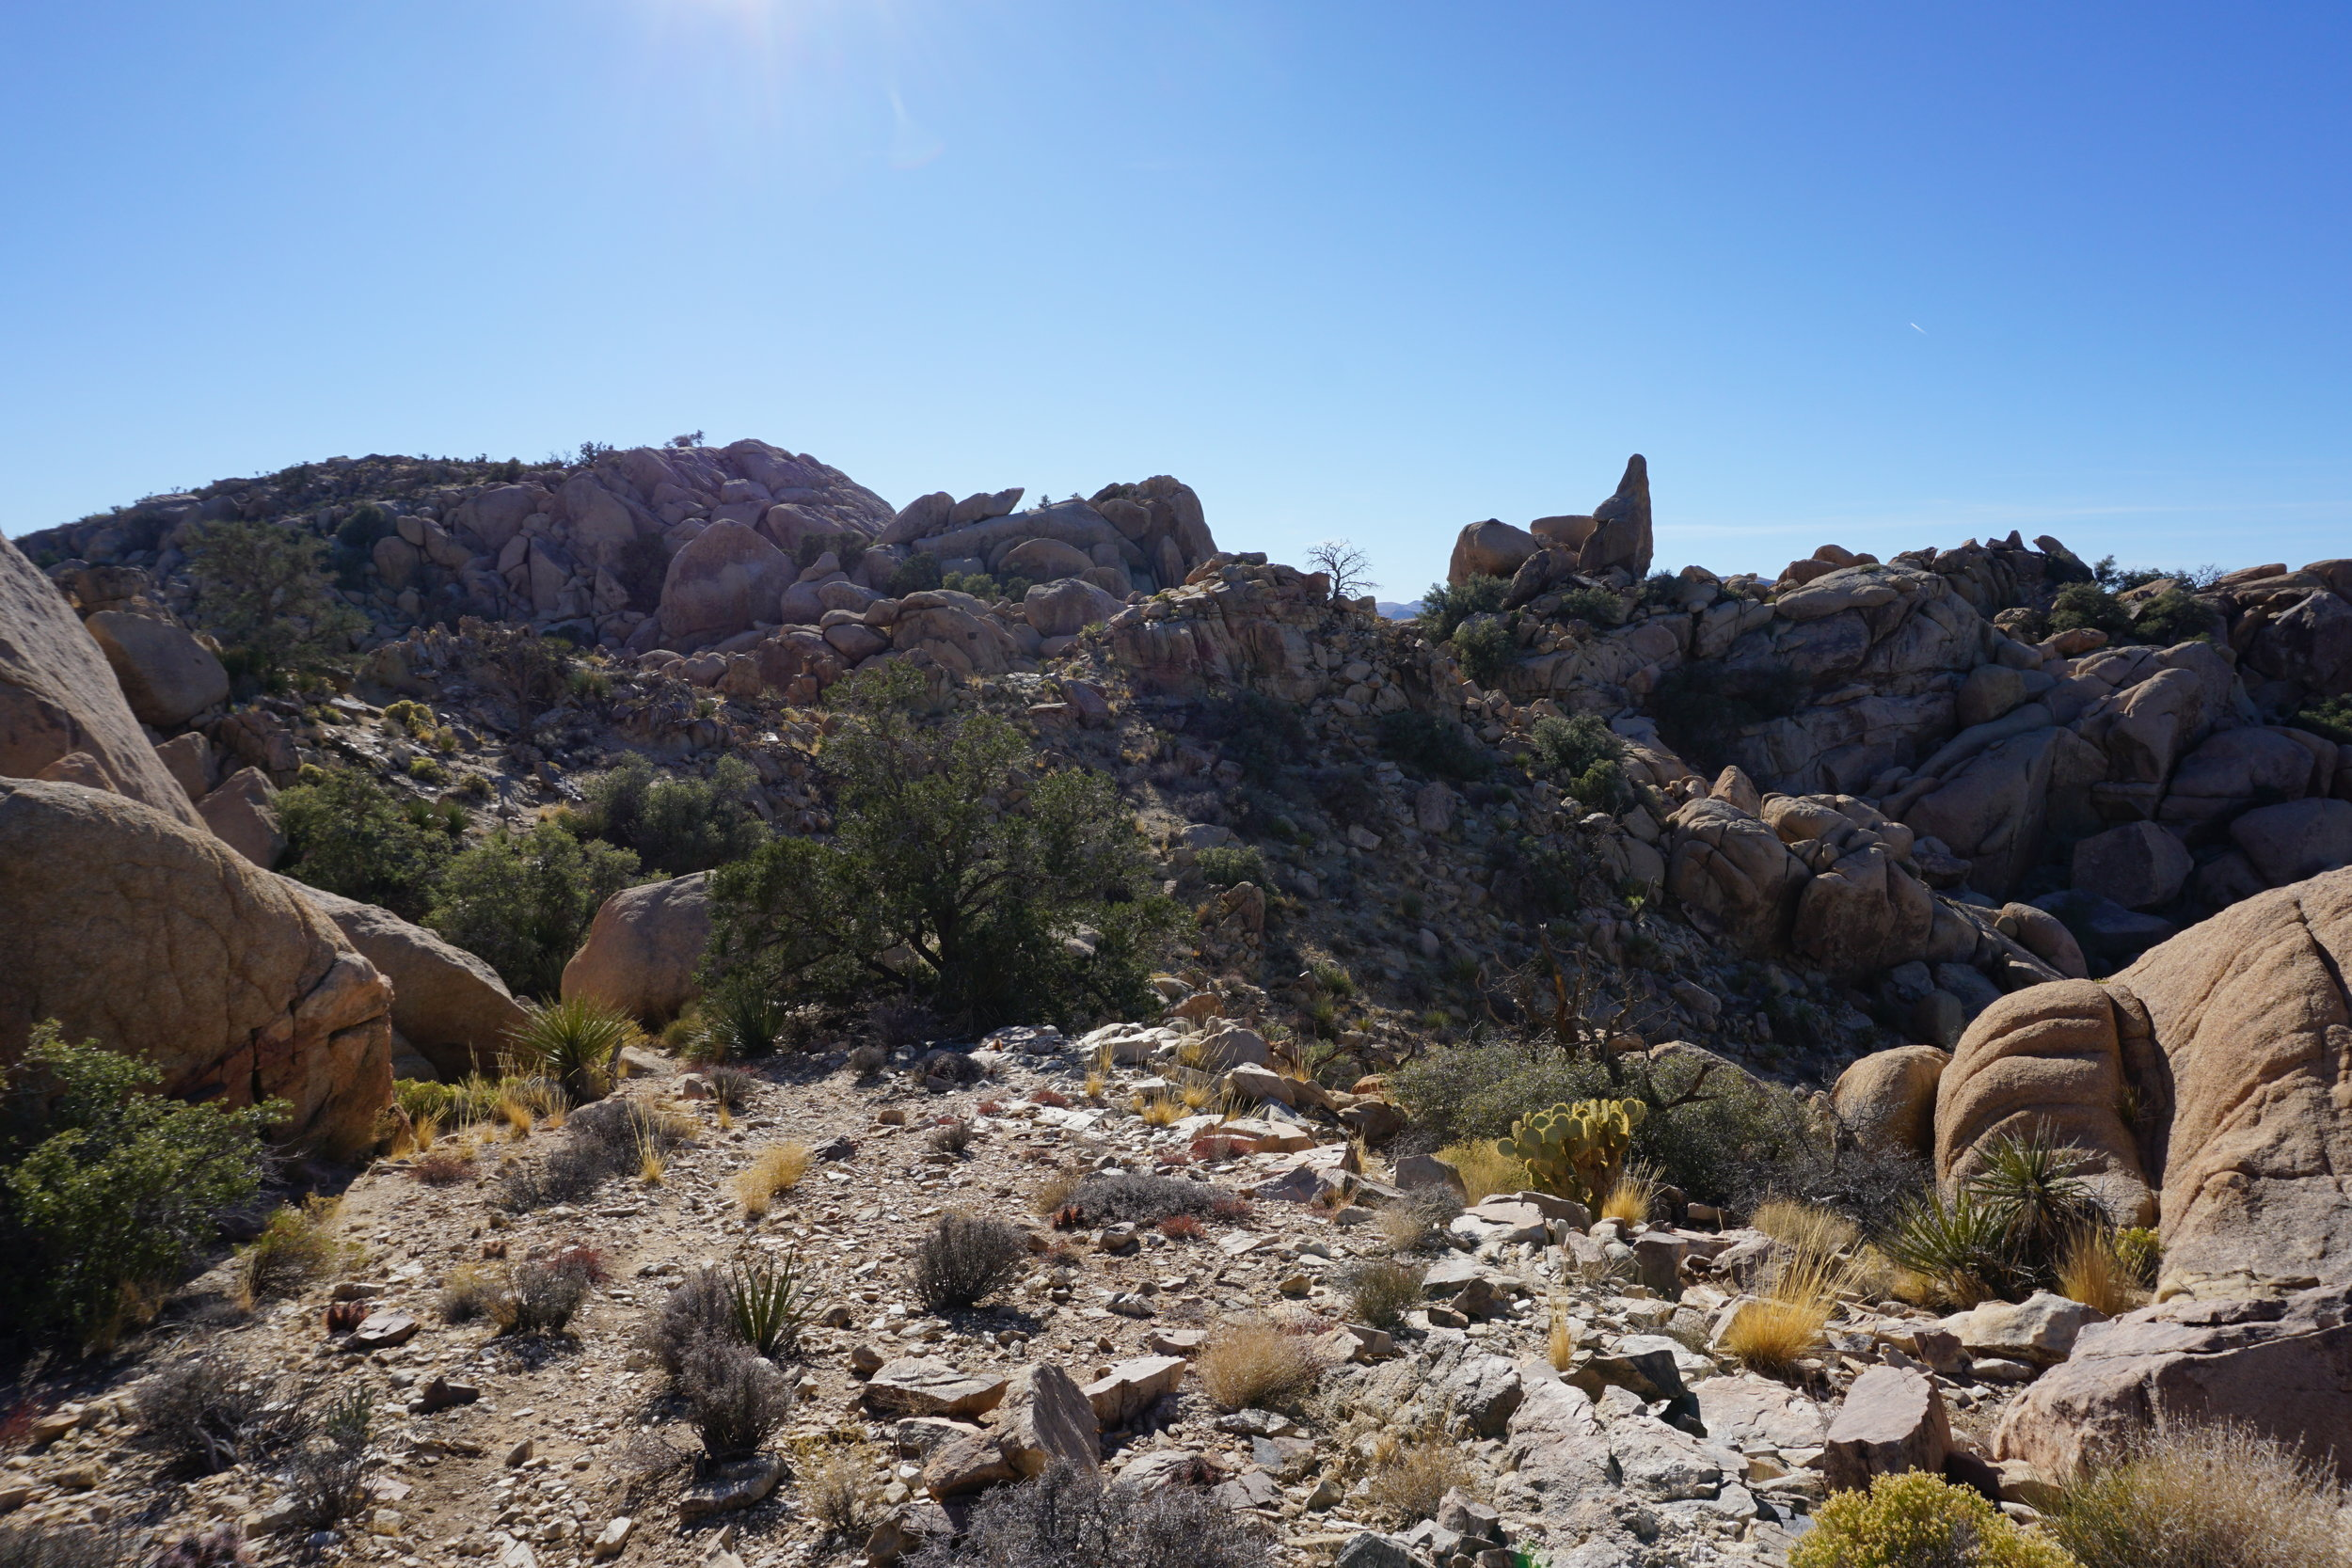 The trail to the Eagle Cliff Mine passes through some of the most beautiful terrain in Joshua Tree National Park.